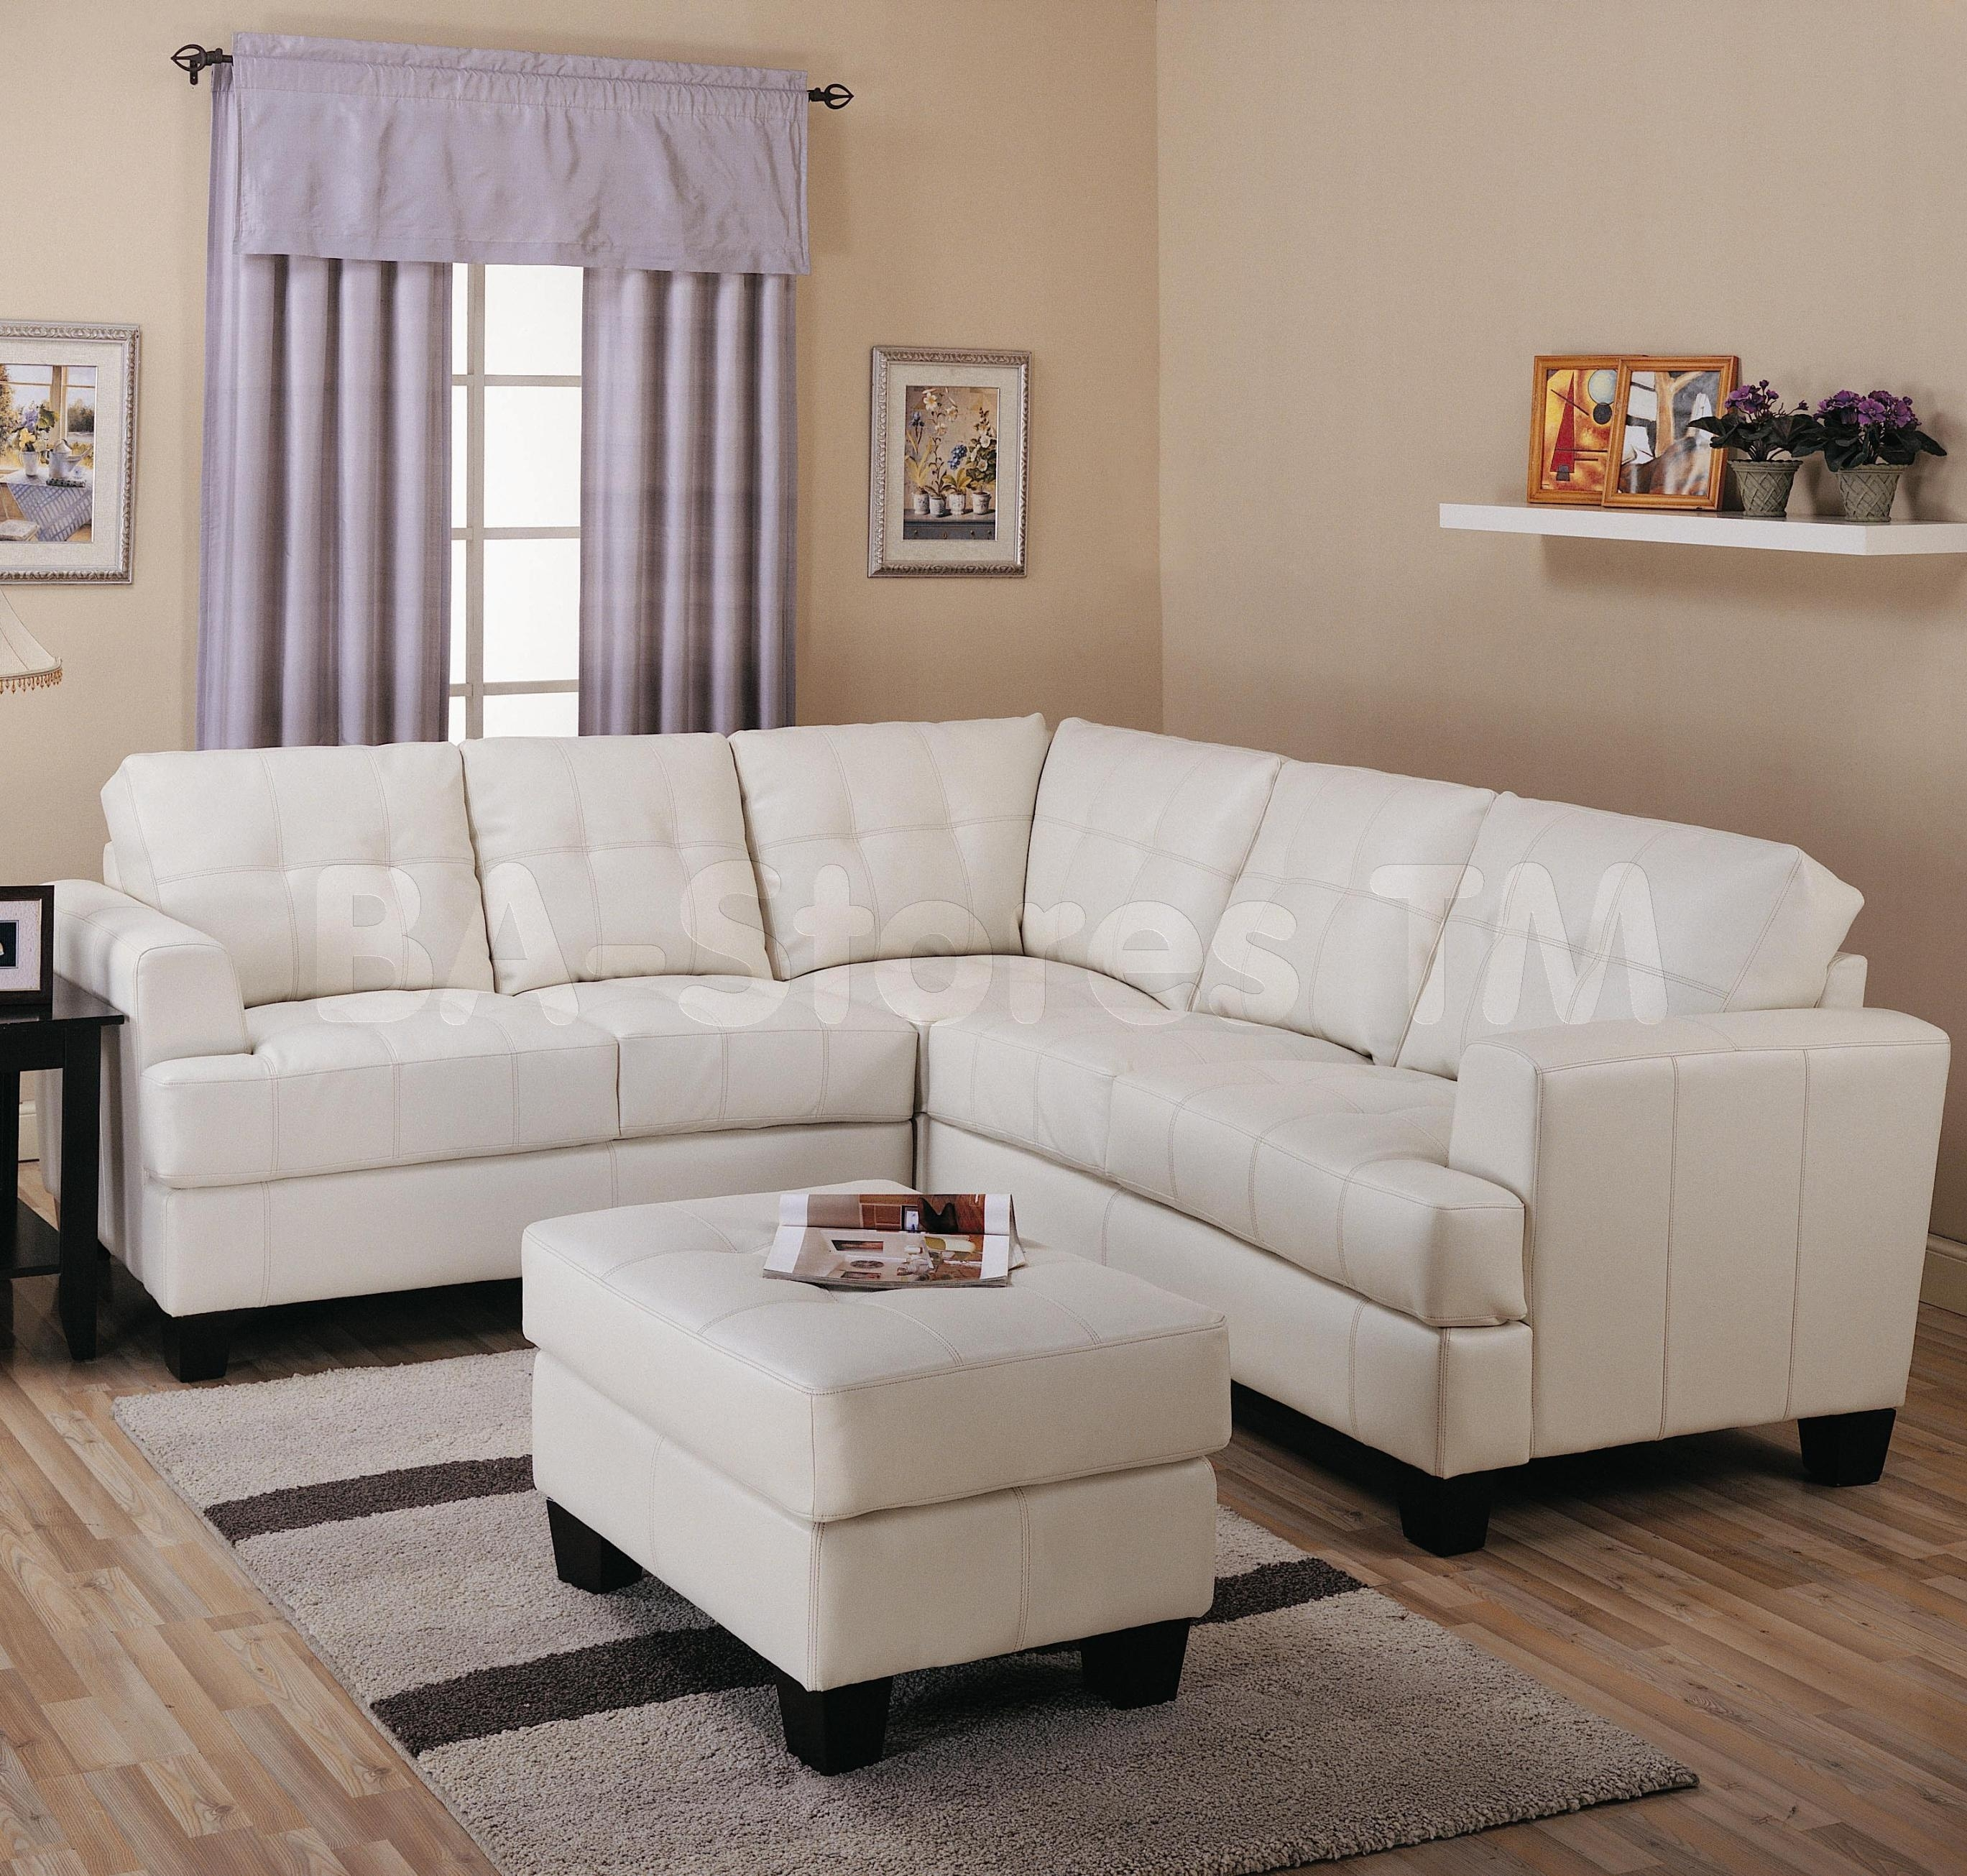 Living Room Sofa Used Sectional Sofas For Sale Toronto Best Home with Ontario Sectional Sofas (Image 5 of 10)